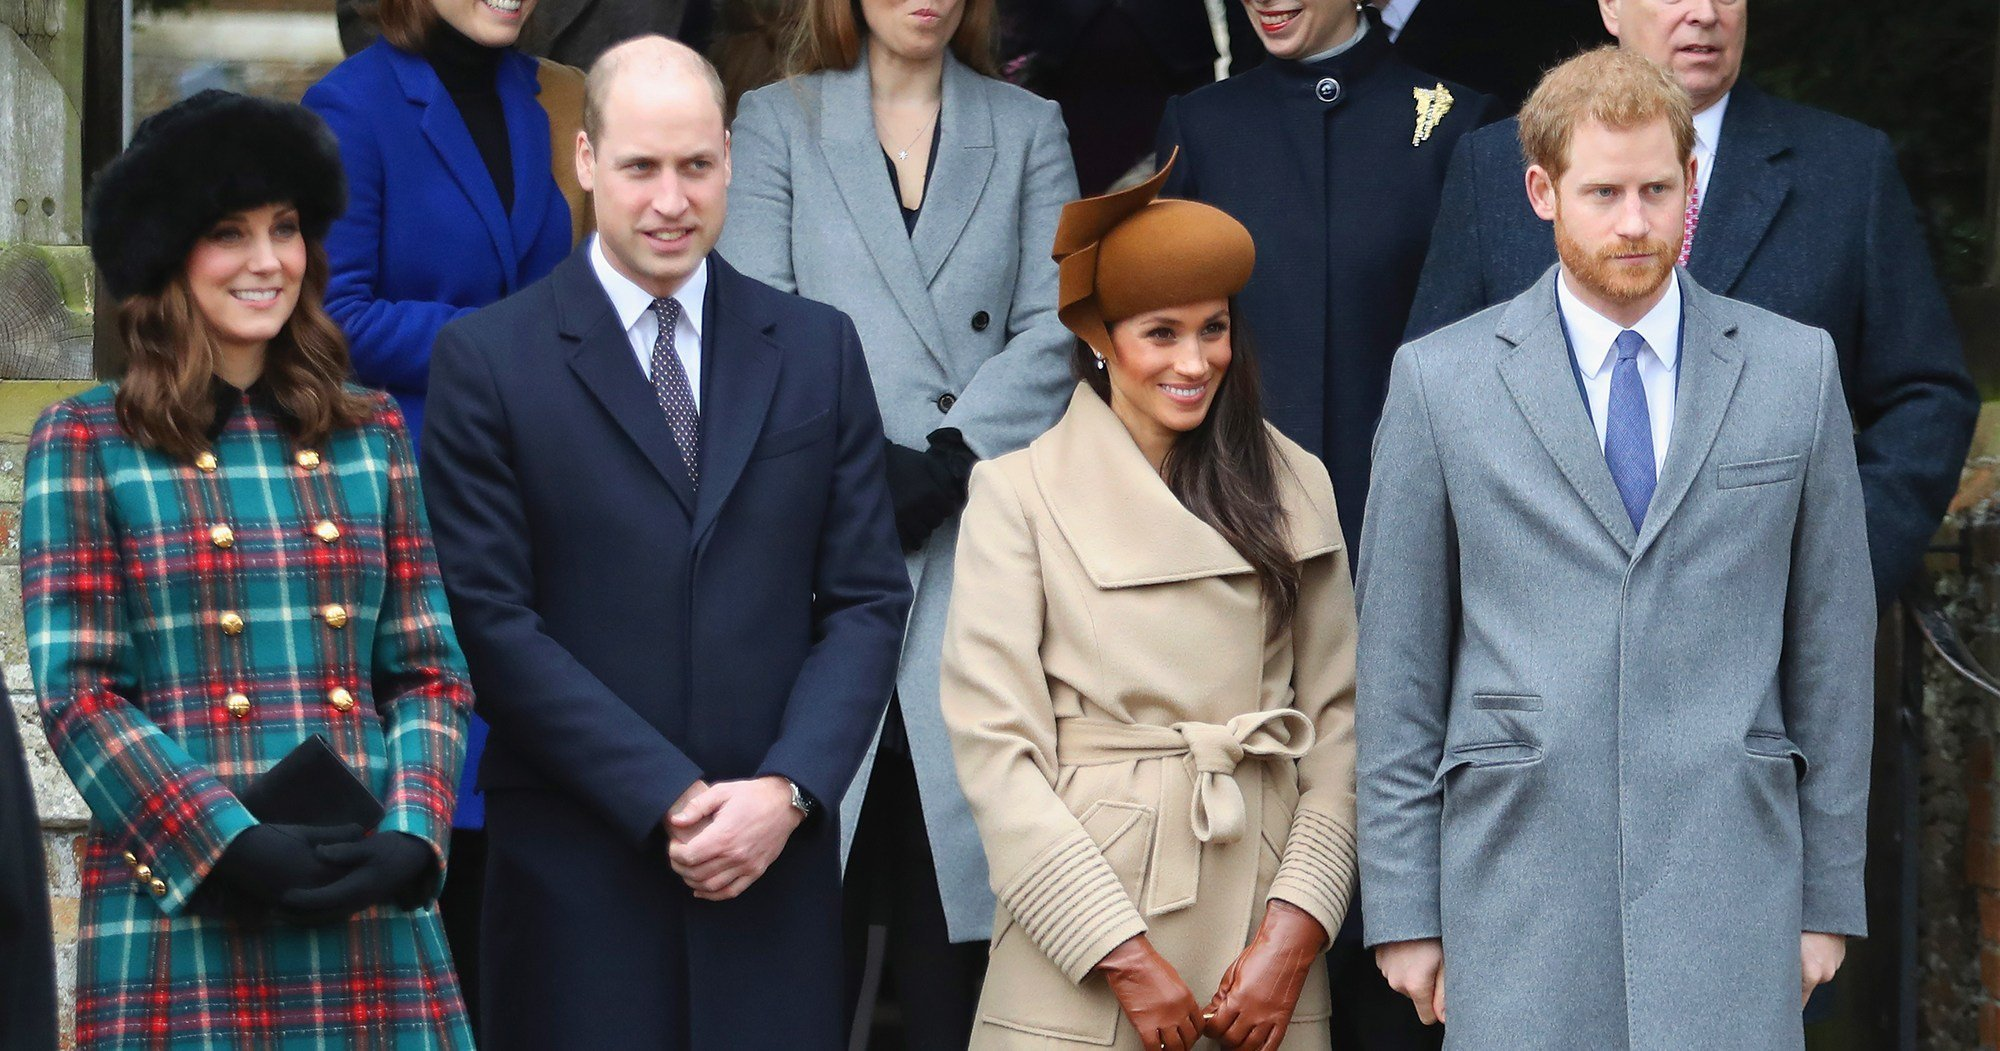 Yum! The Royal Family's Christmas Dinner Sounds Downright Delicious